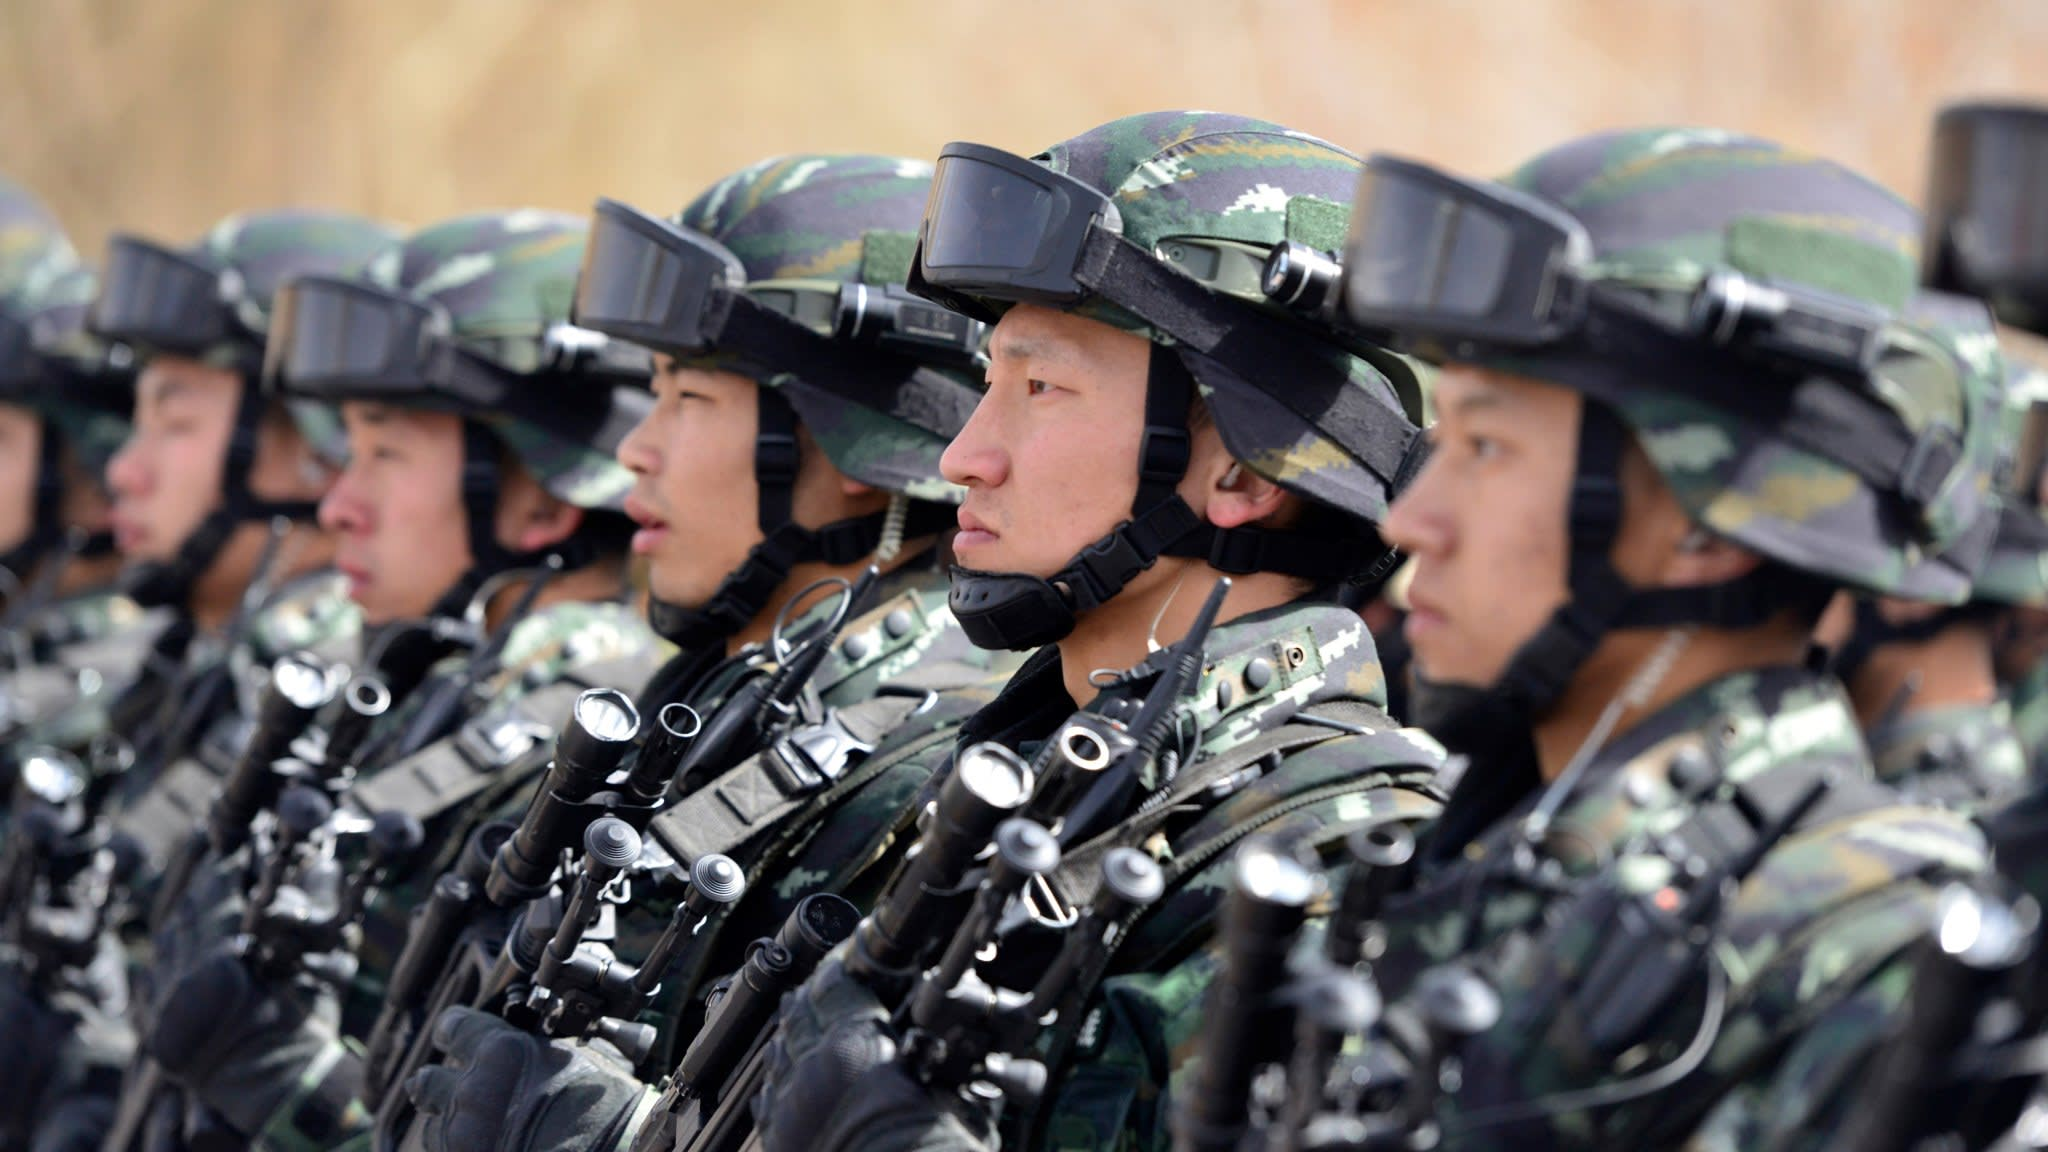 China seeks global role for elite counter-terrorism forces   Financial Times